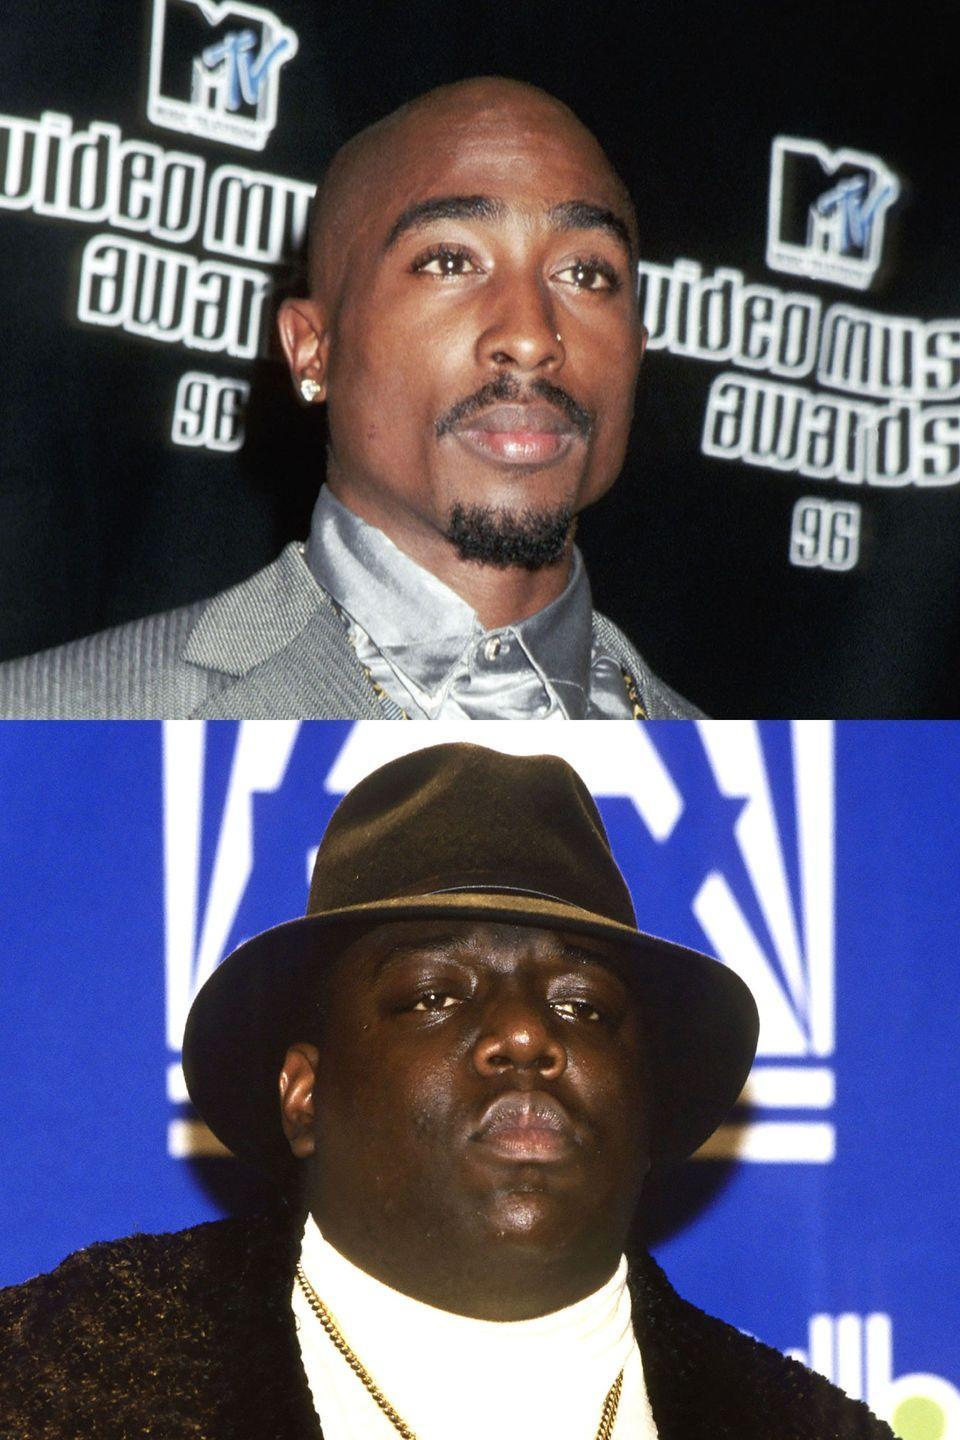 "<p>After Tupac was shot in Manhattan, Biggie released the track ""Who Shot Ya?"", which the former interpreted as a diss track. He responded in turn with multiple disses of his own, heating up a coastal rap war. Of course, this epic feud came to an end in September of '96, when Tupac was shot and killed in a drive-by. Six months after that, Biggie suffered the same fate. Both deaths <a href=""http://www.latimes.com/local/lanow/la-me-ln-biggie-smalls-unsolved-20170309-story.html"" rel=""nofollow noopener"" target=""_blank"" data-ylk=""slk:remain officially unsolved"" class=""link rapid-noclick-resp"">remain officially unsolved</a>.</p>"